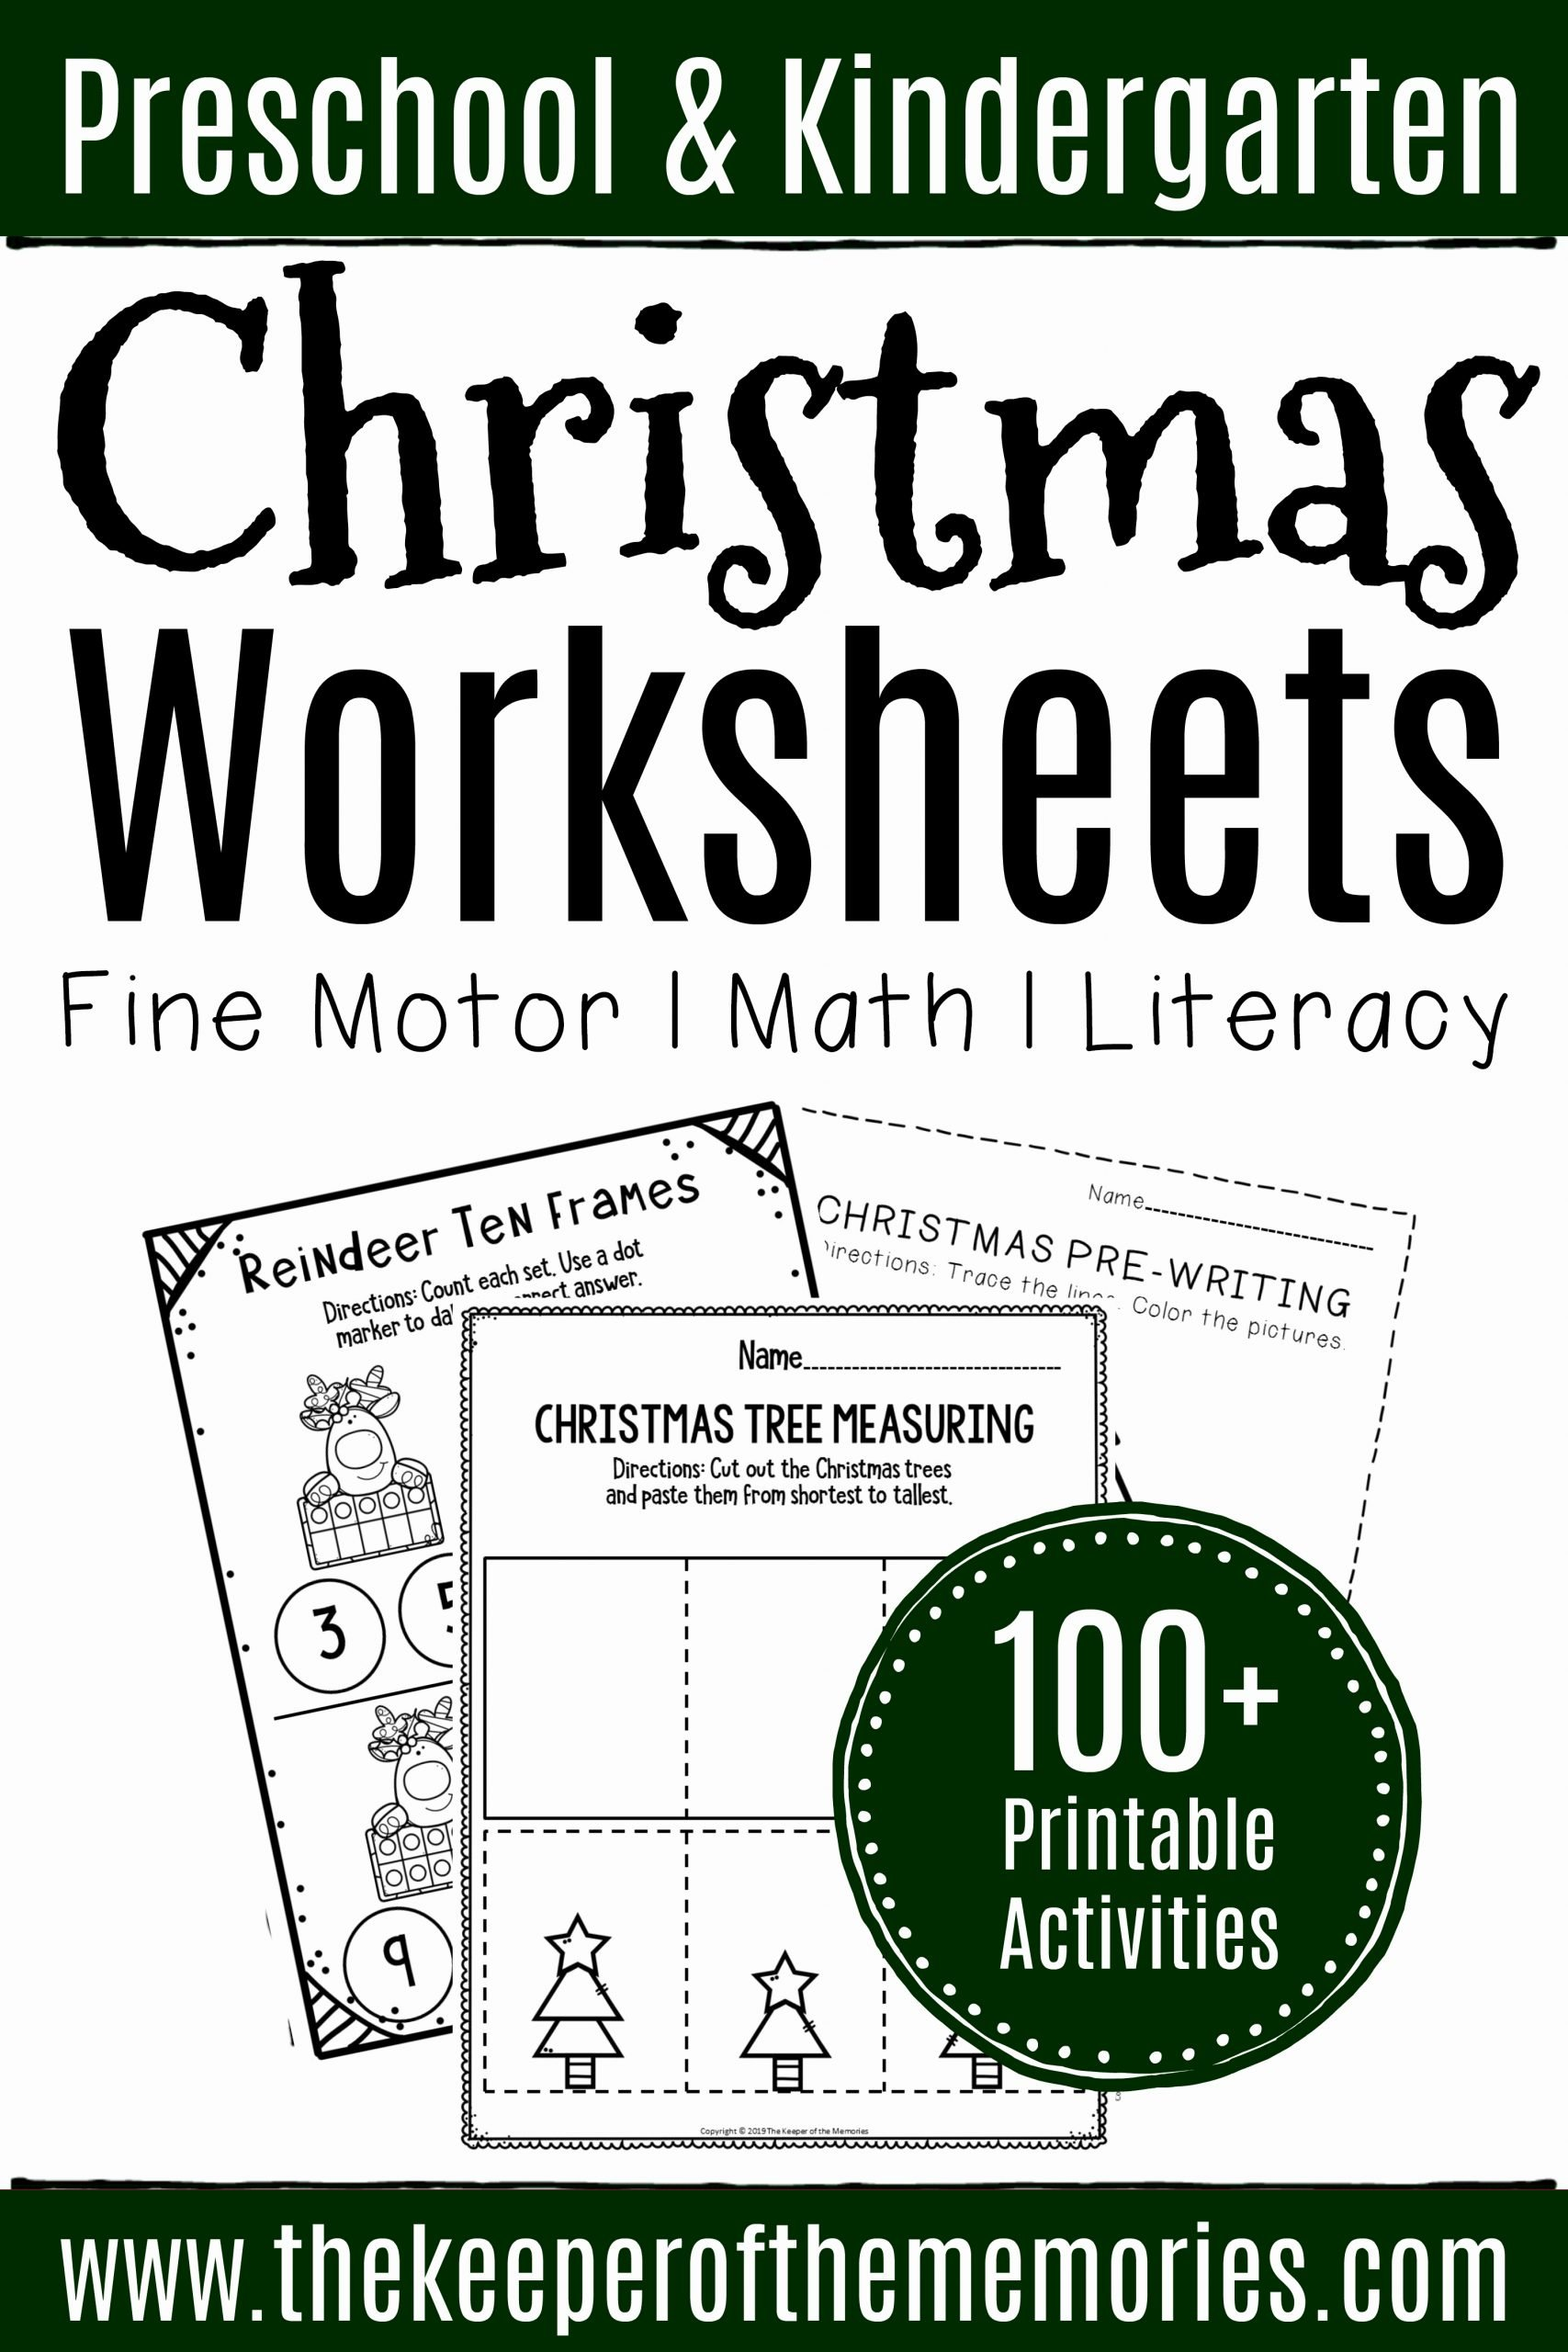 Christmas Worksheets for Preschoolers Fresh 100 Christmas Worksheets for Preschoolers & Kindergartners